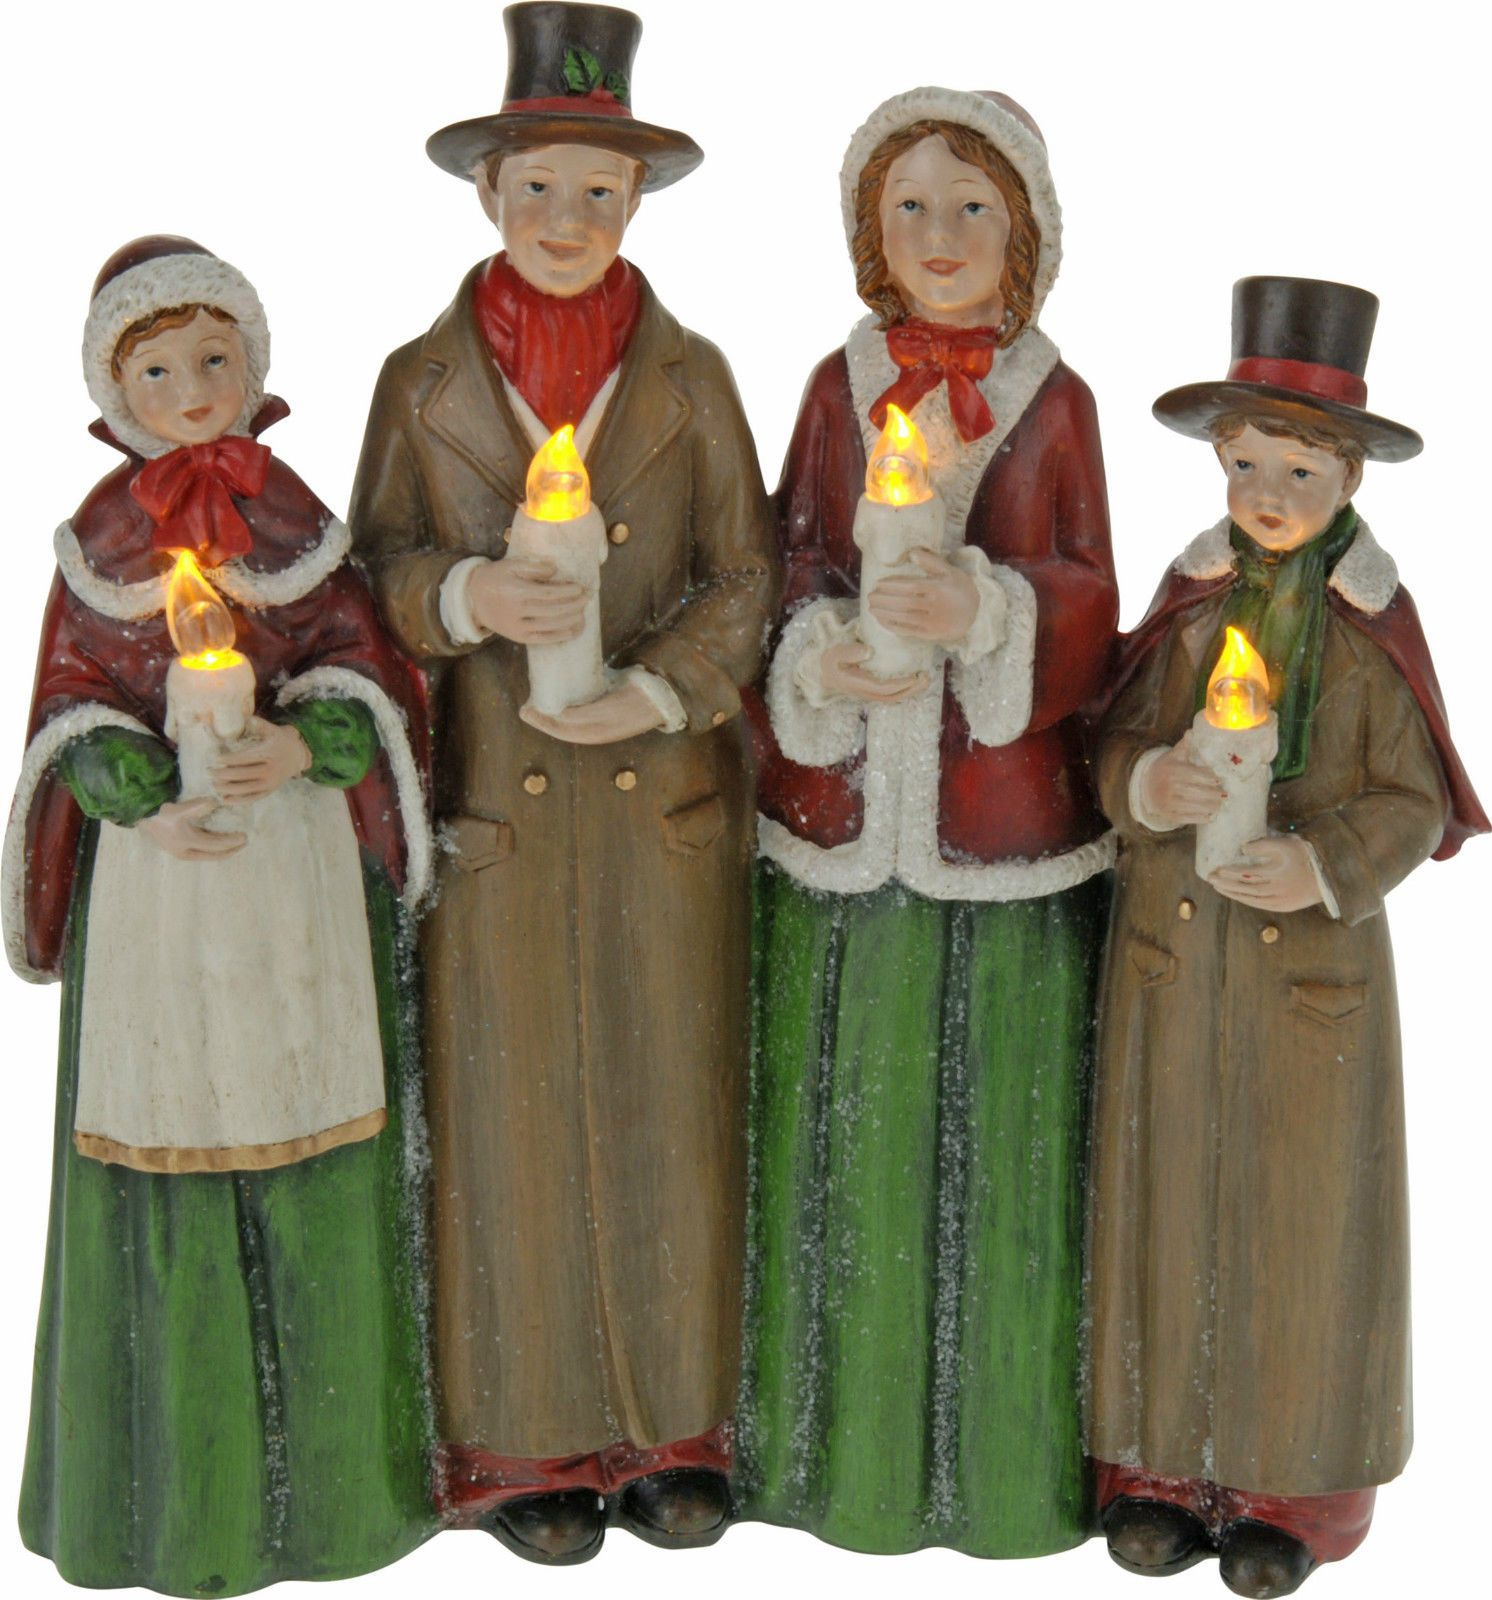 Christmas Carolers Holiday Yard Decorations By Al3001 On: Christmas Carol Singers Decorations